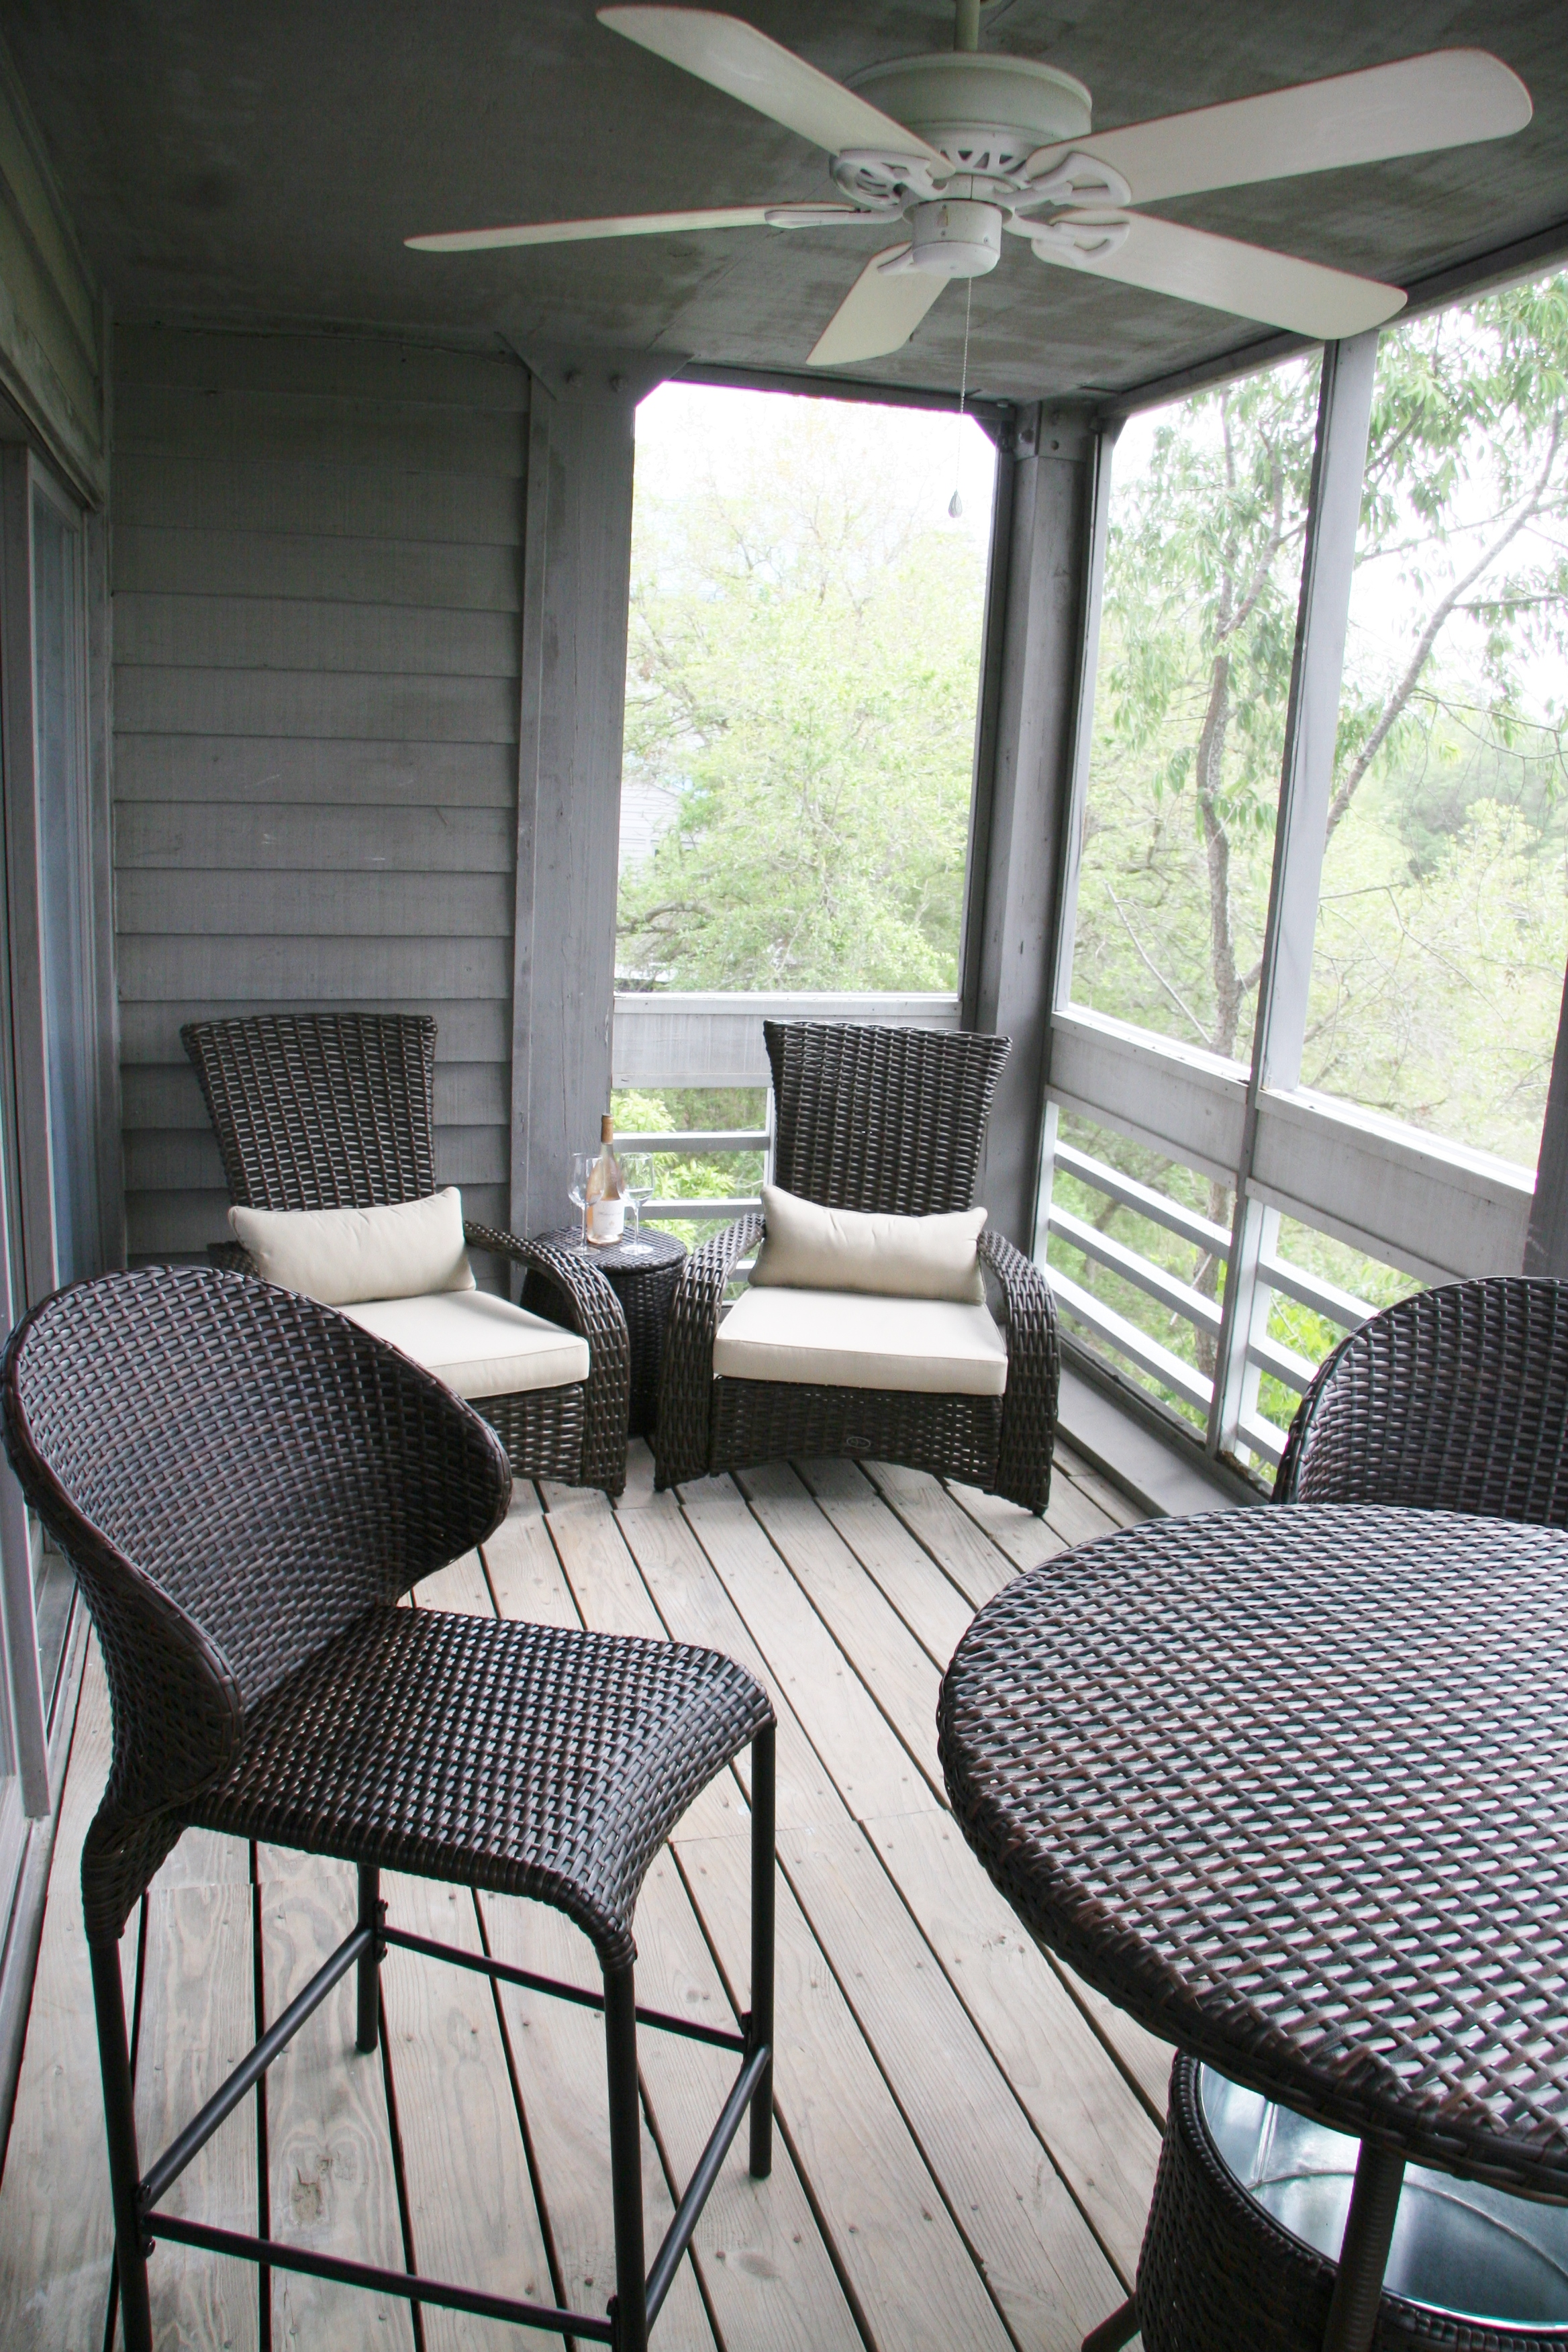 Enjoy the screened in porch!